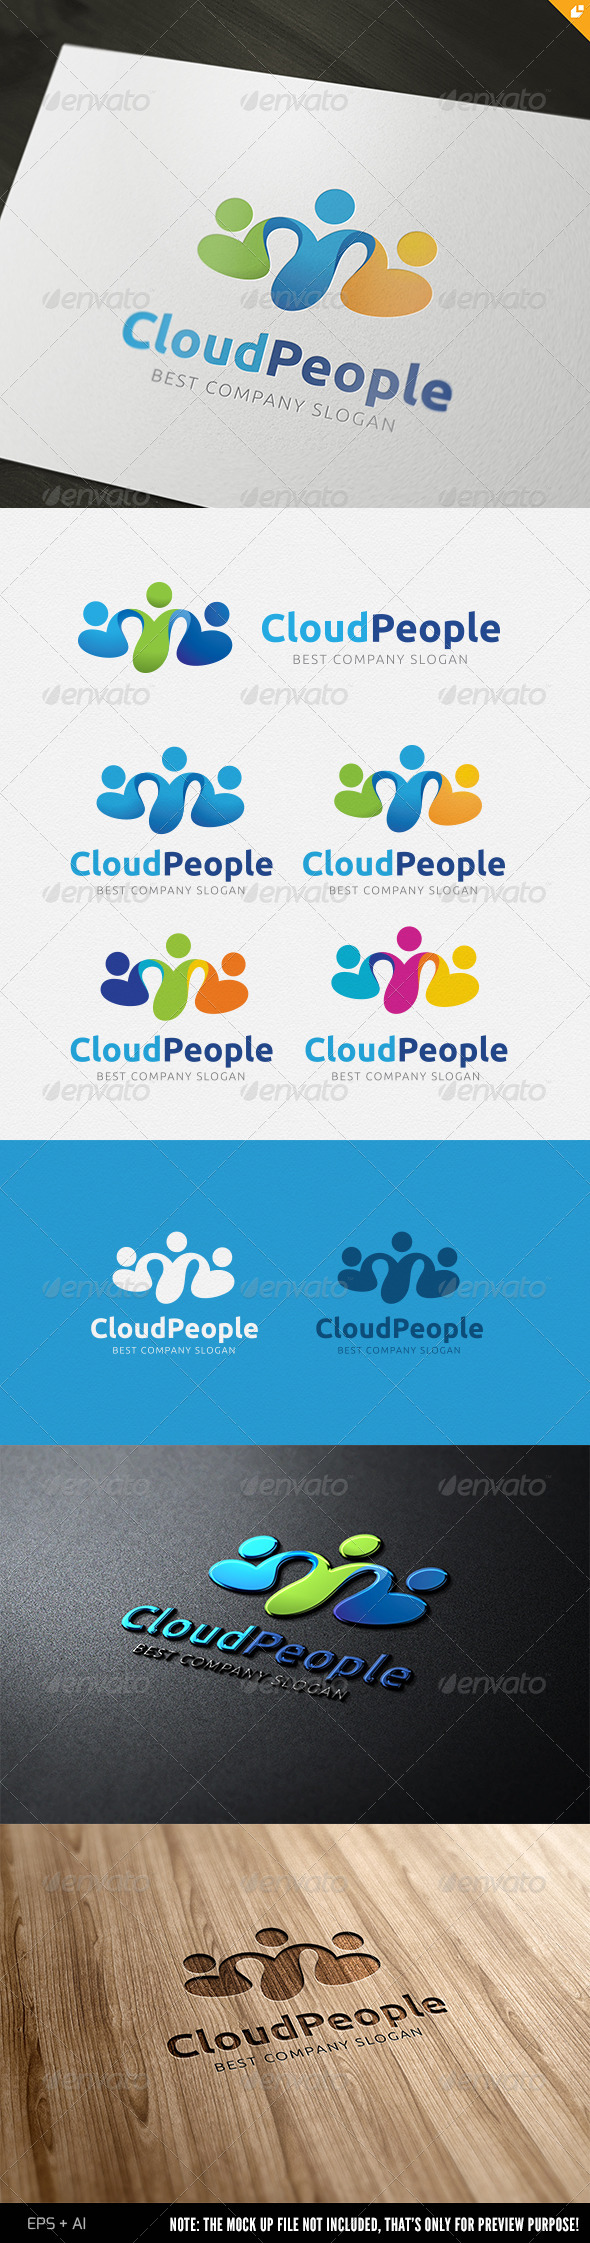 Cloud People Logo - 3d Abstract